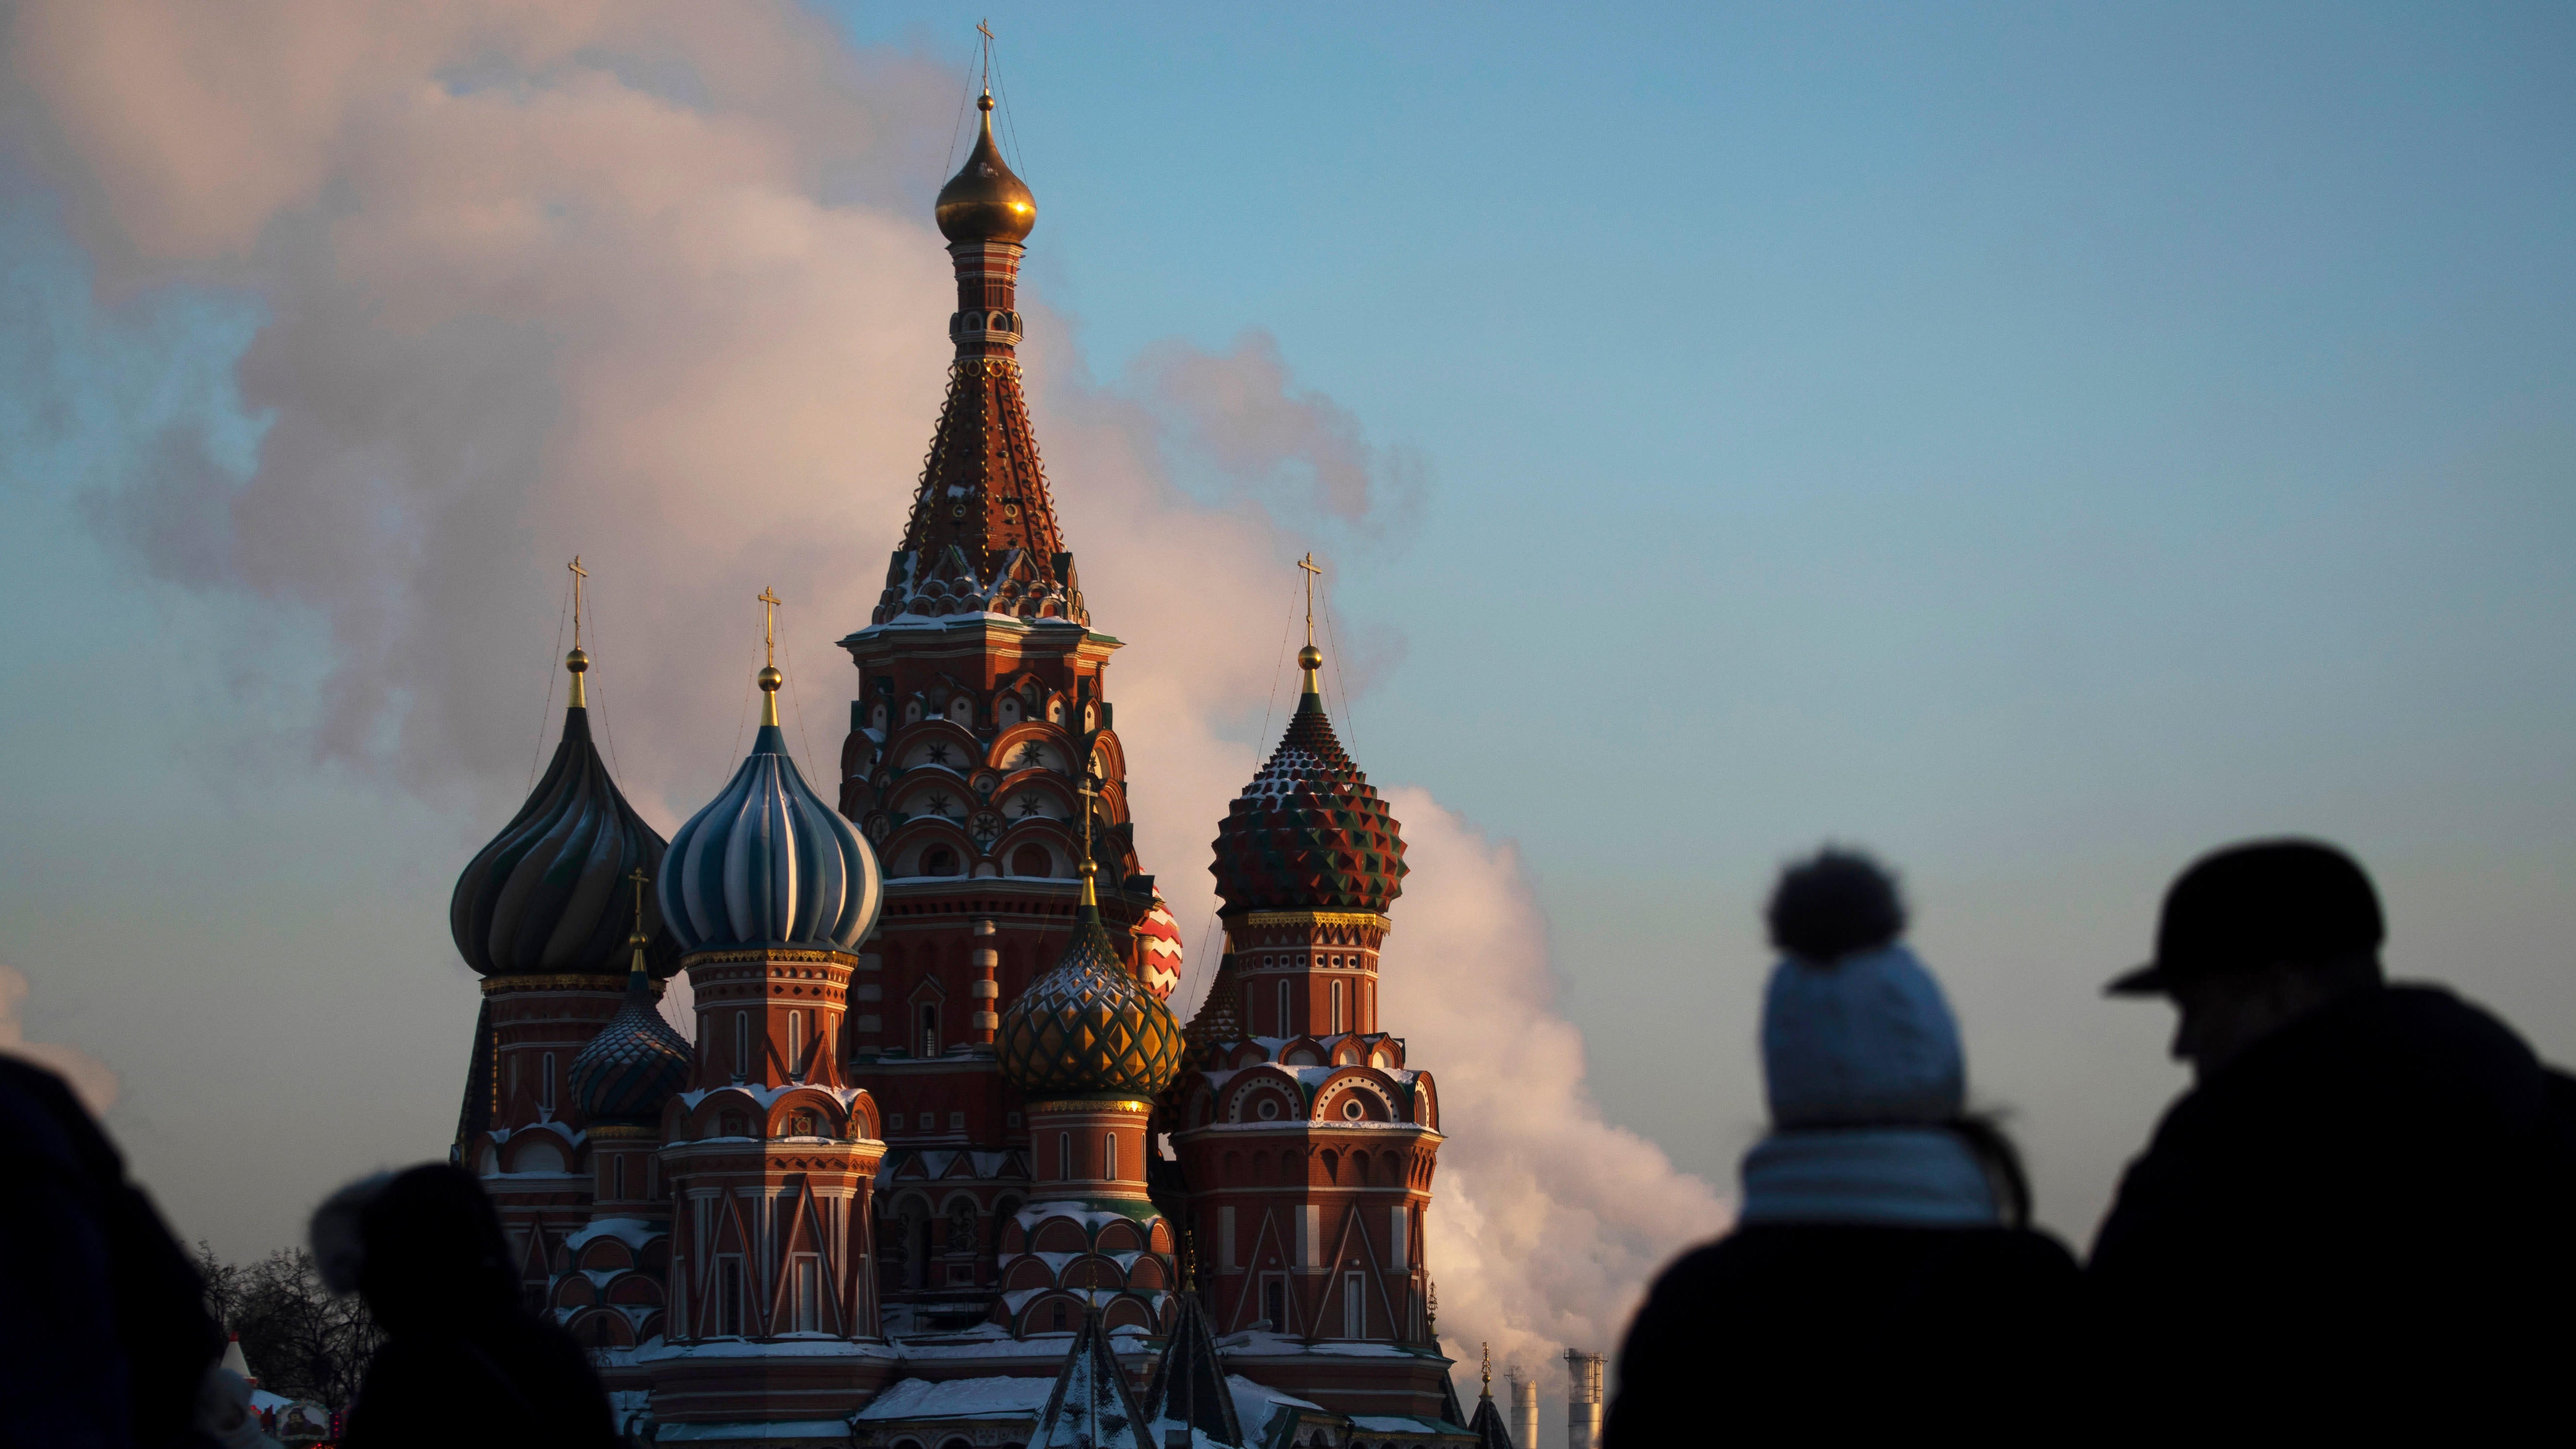 Russia Plans To Block Major VPNs As Next Step In Closing Up Internet